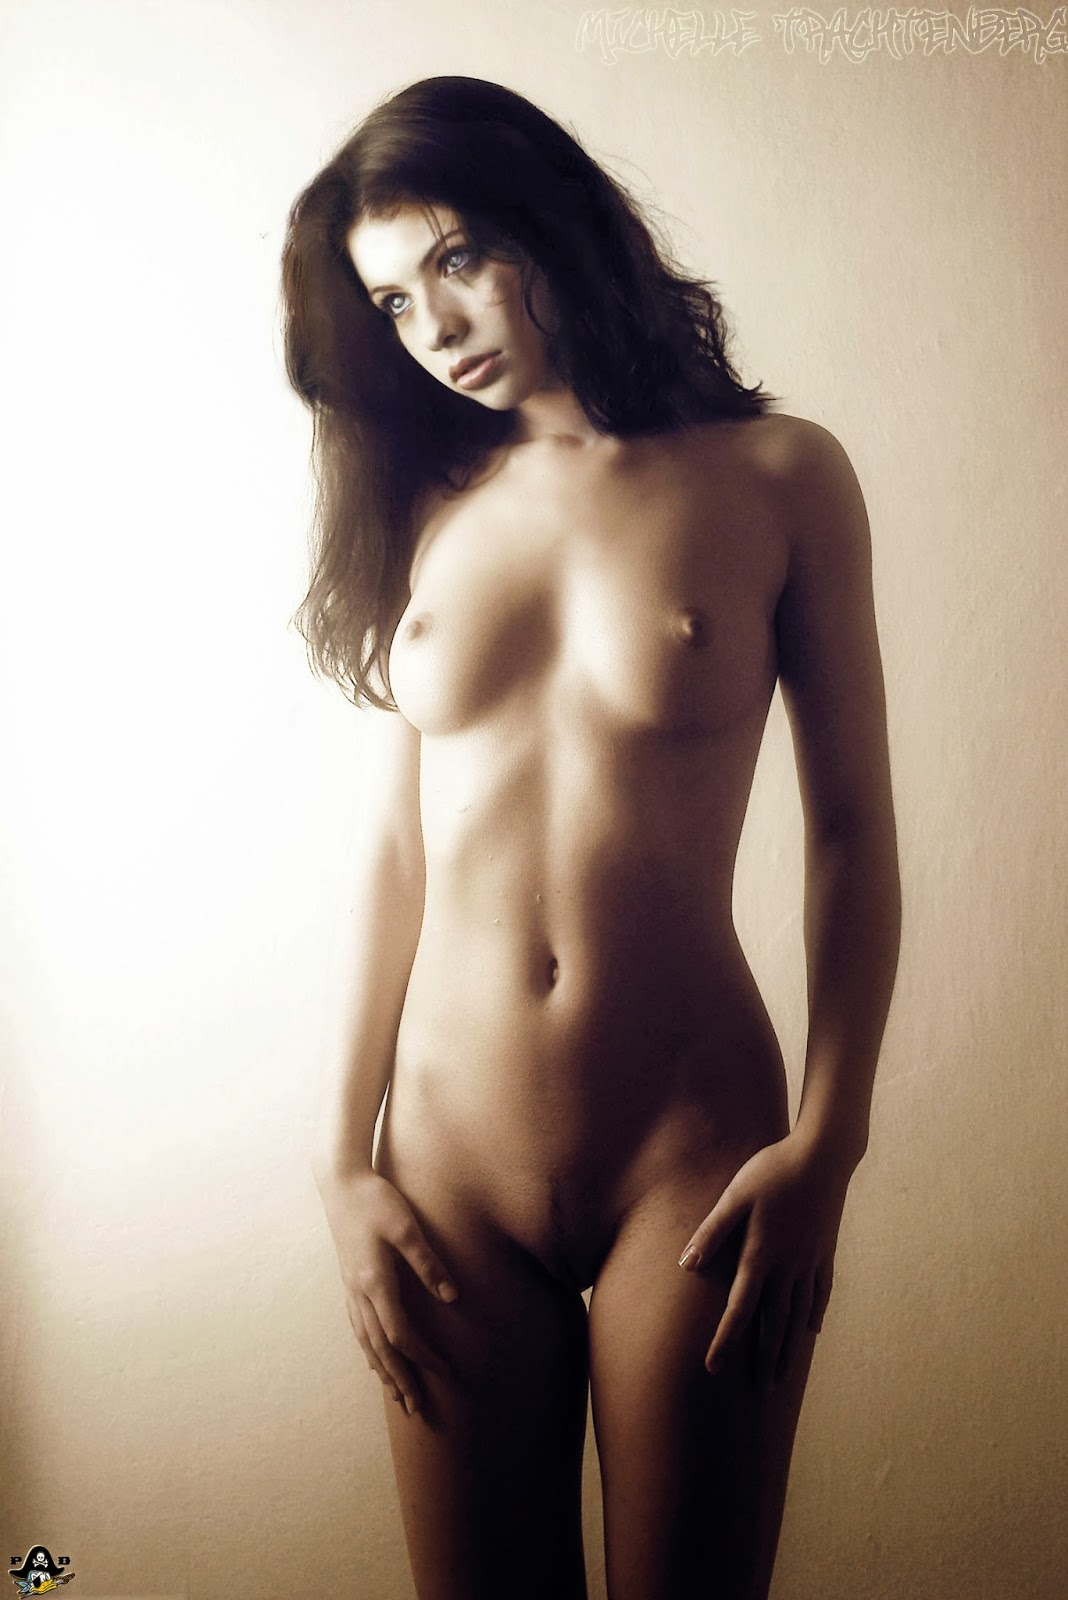 new fhm phil nude